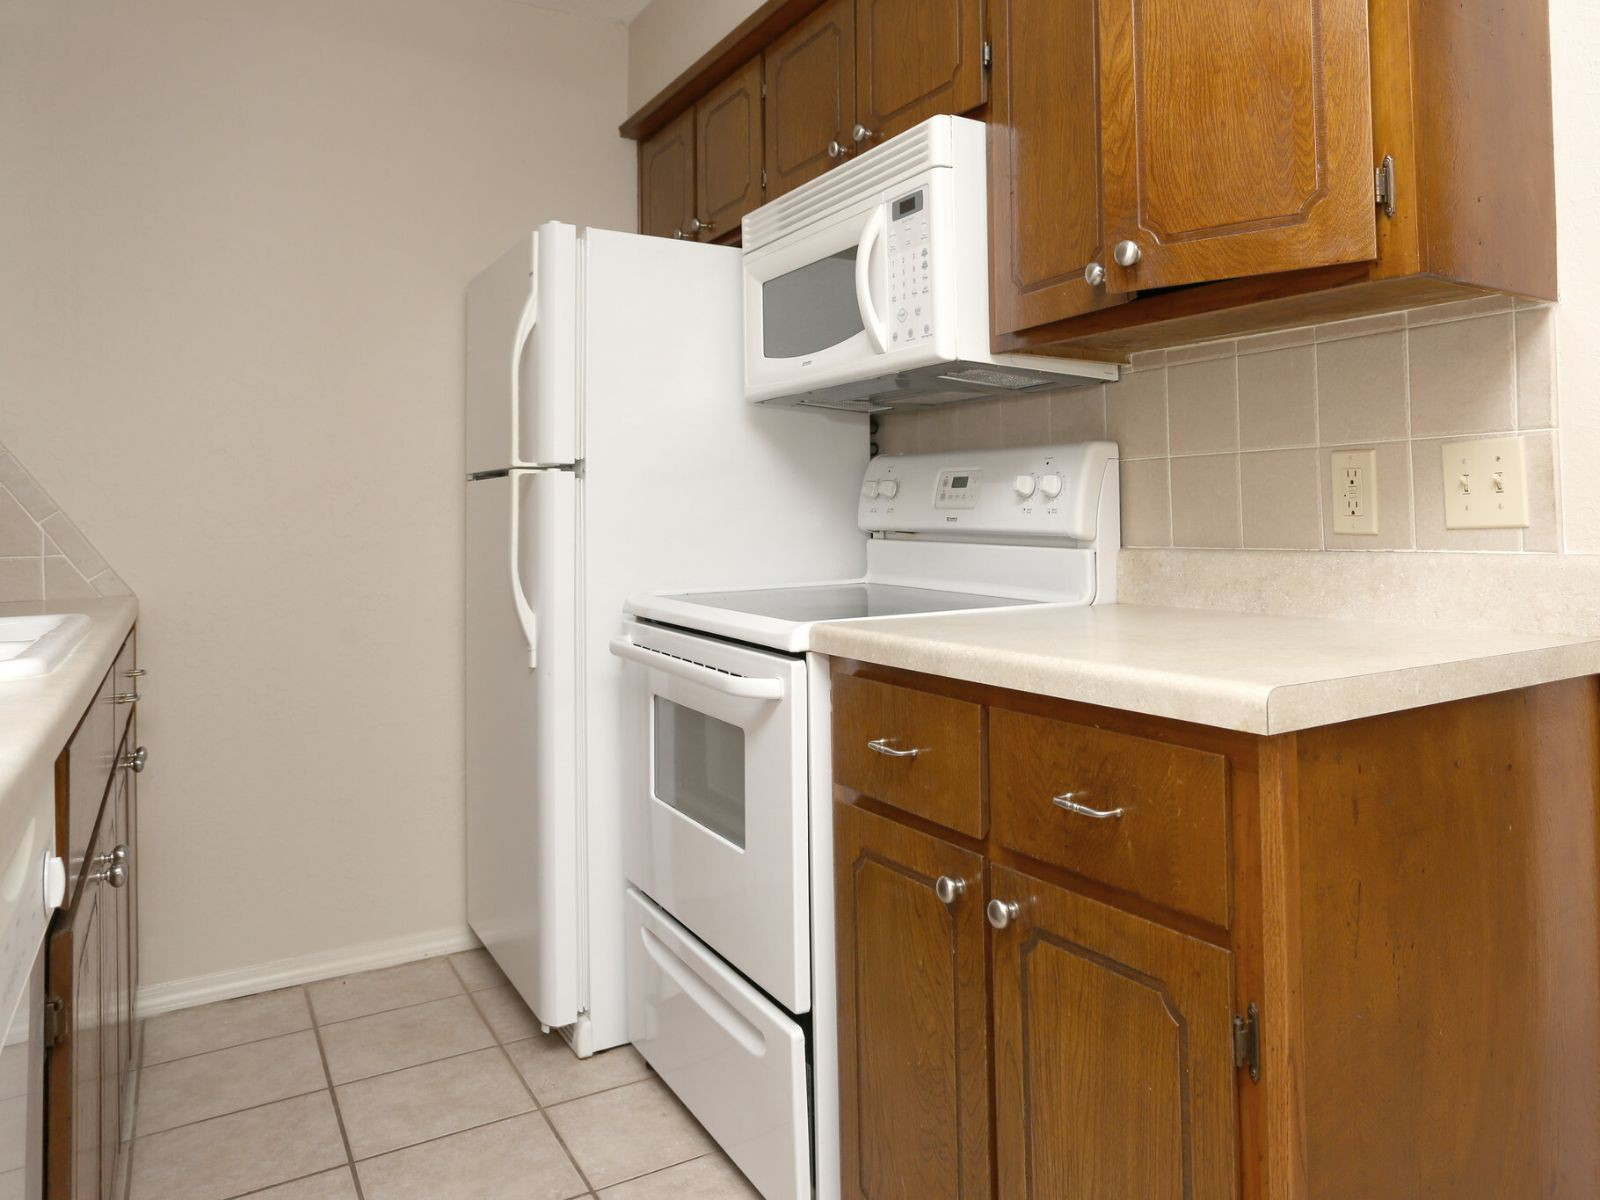 Apartments Near Cameron Pepper Tree Apartments for Cameron University Students in Lawton, OK